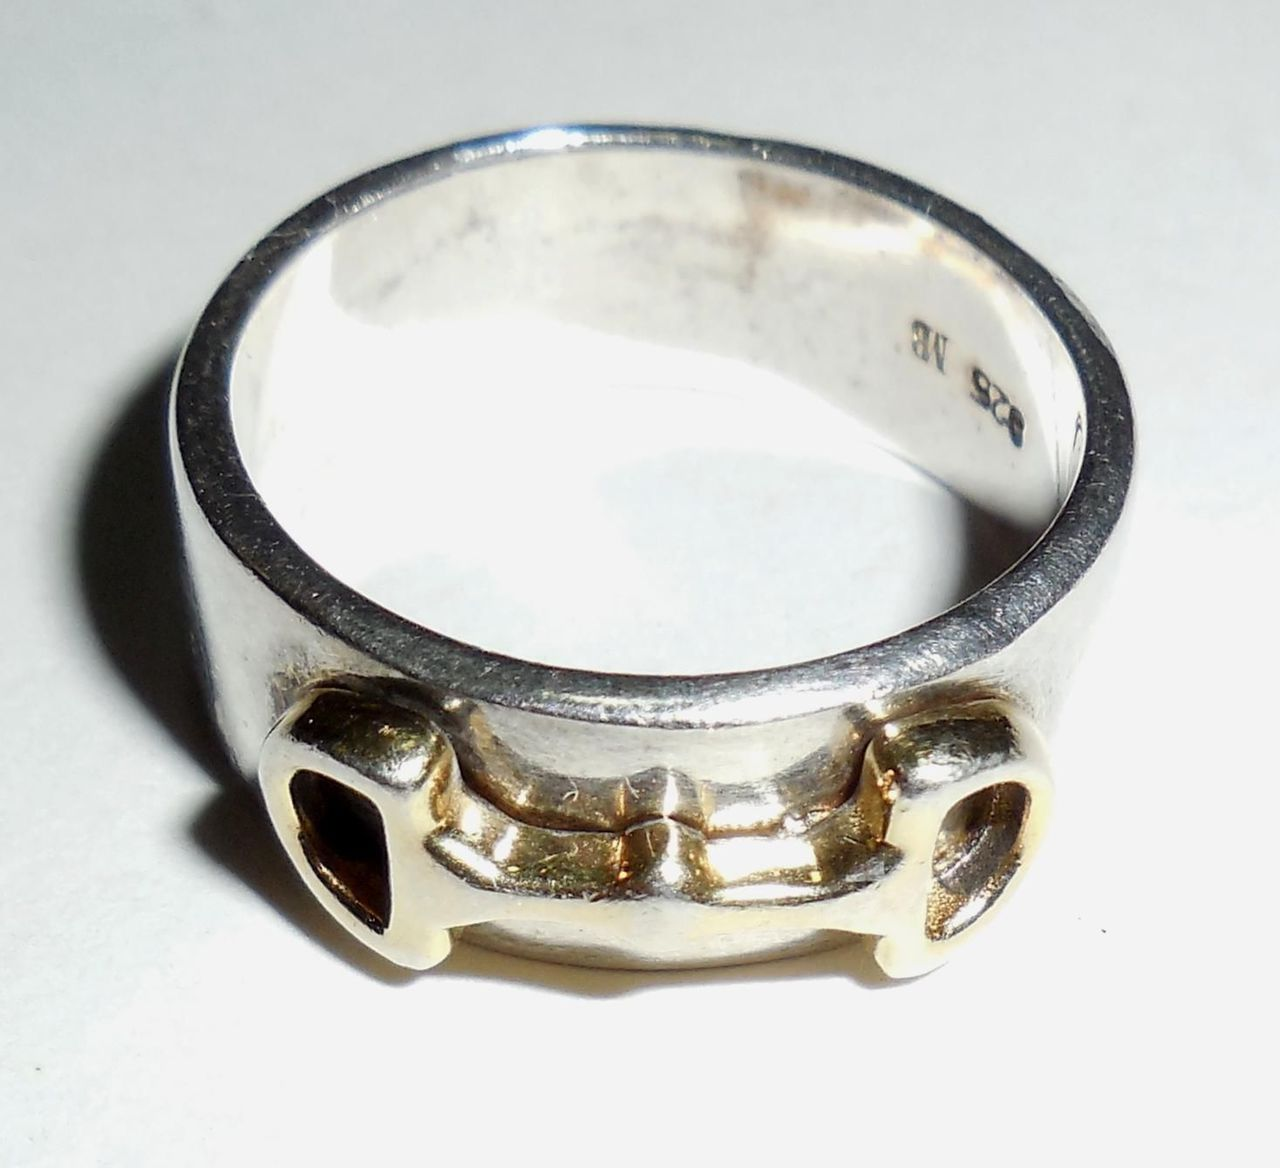 Hand Made Sterling Silver Gold Overlay Cigar Band Ring Bali Thai Size 6